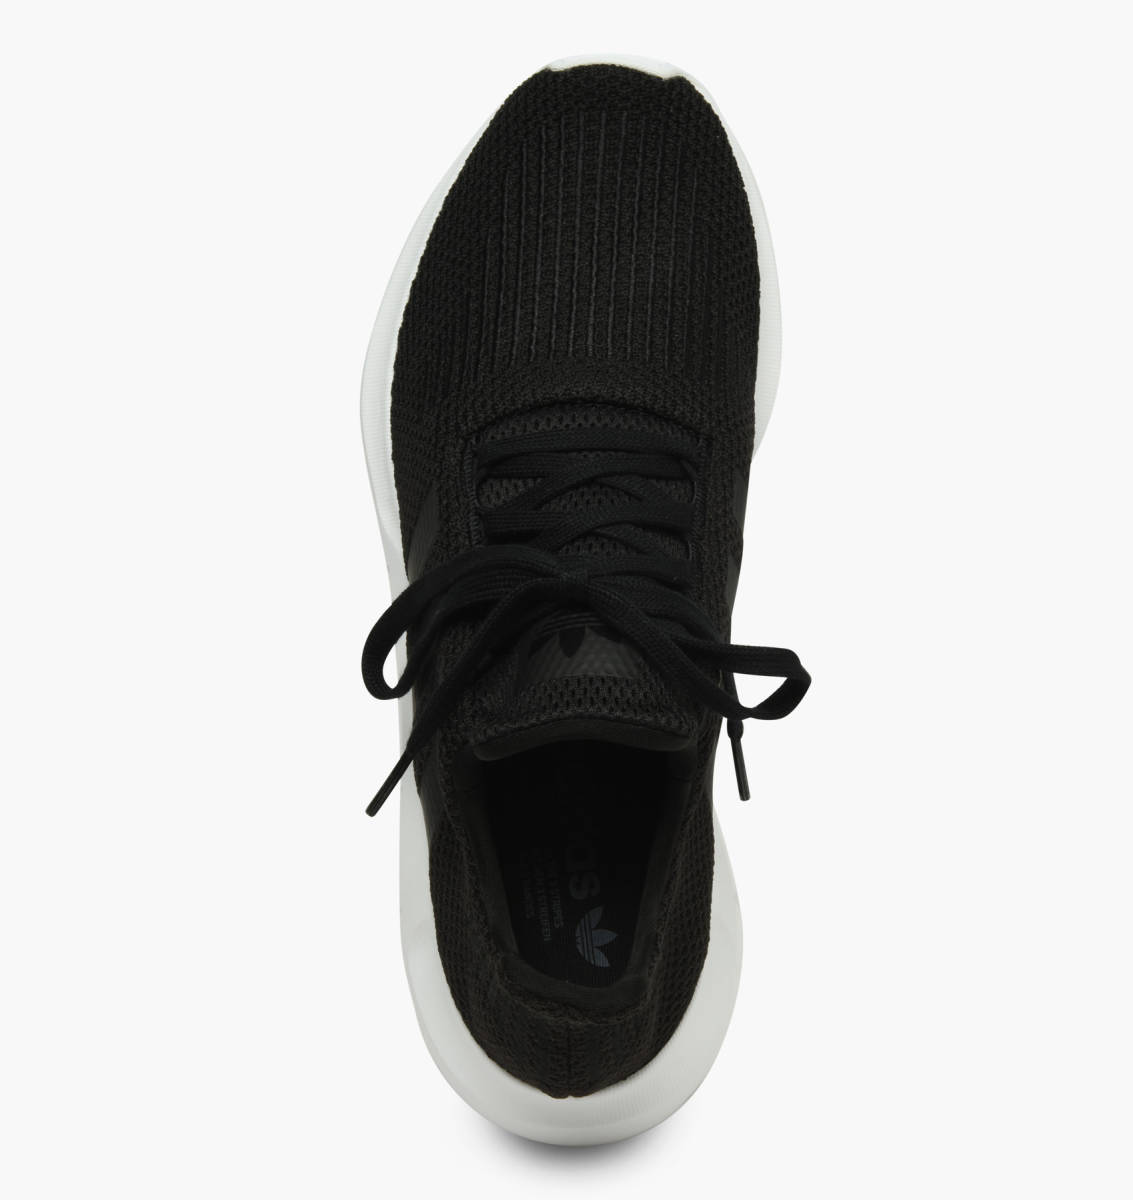 f4f582c693d5 adidas Originals Swift Run in schwarz - B37726